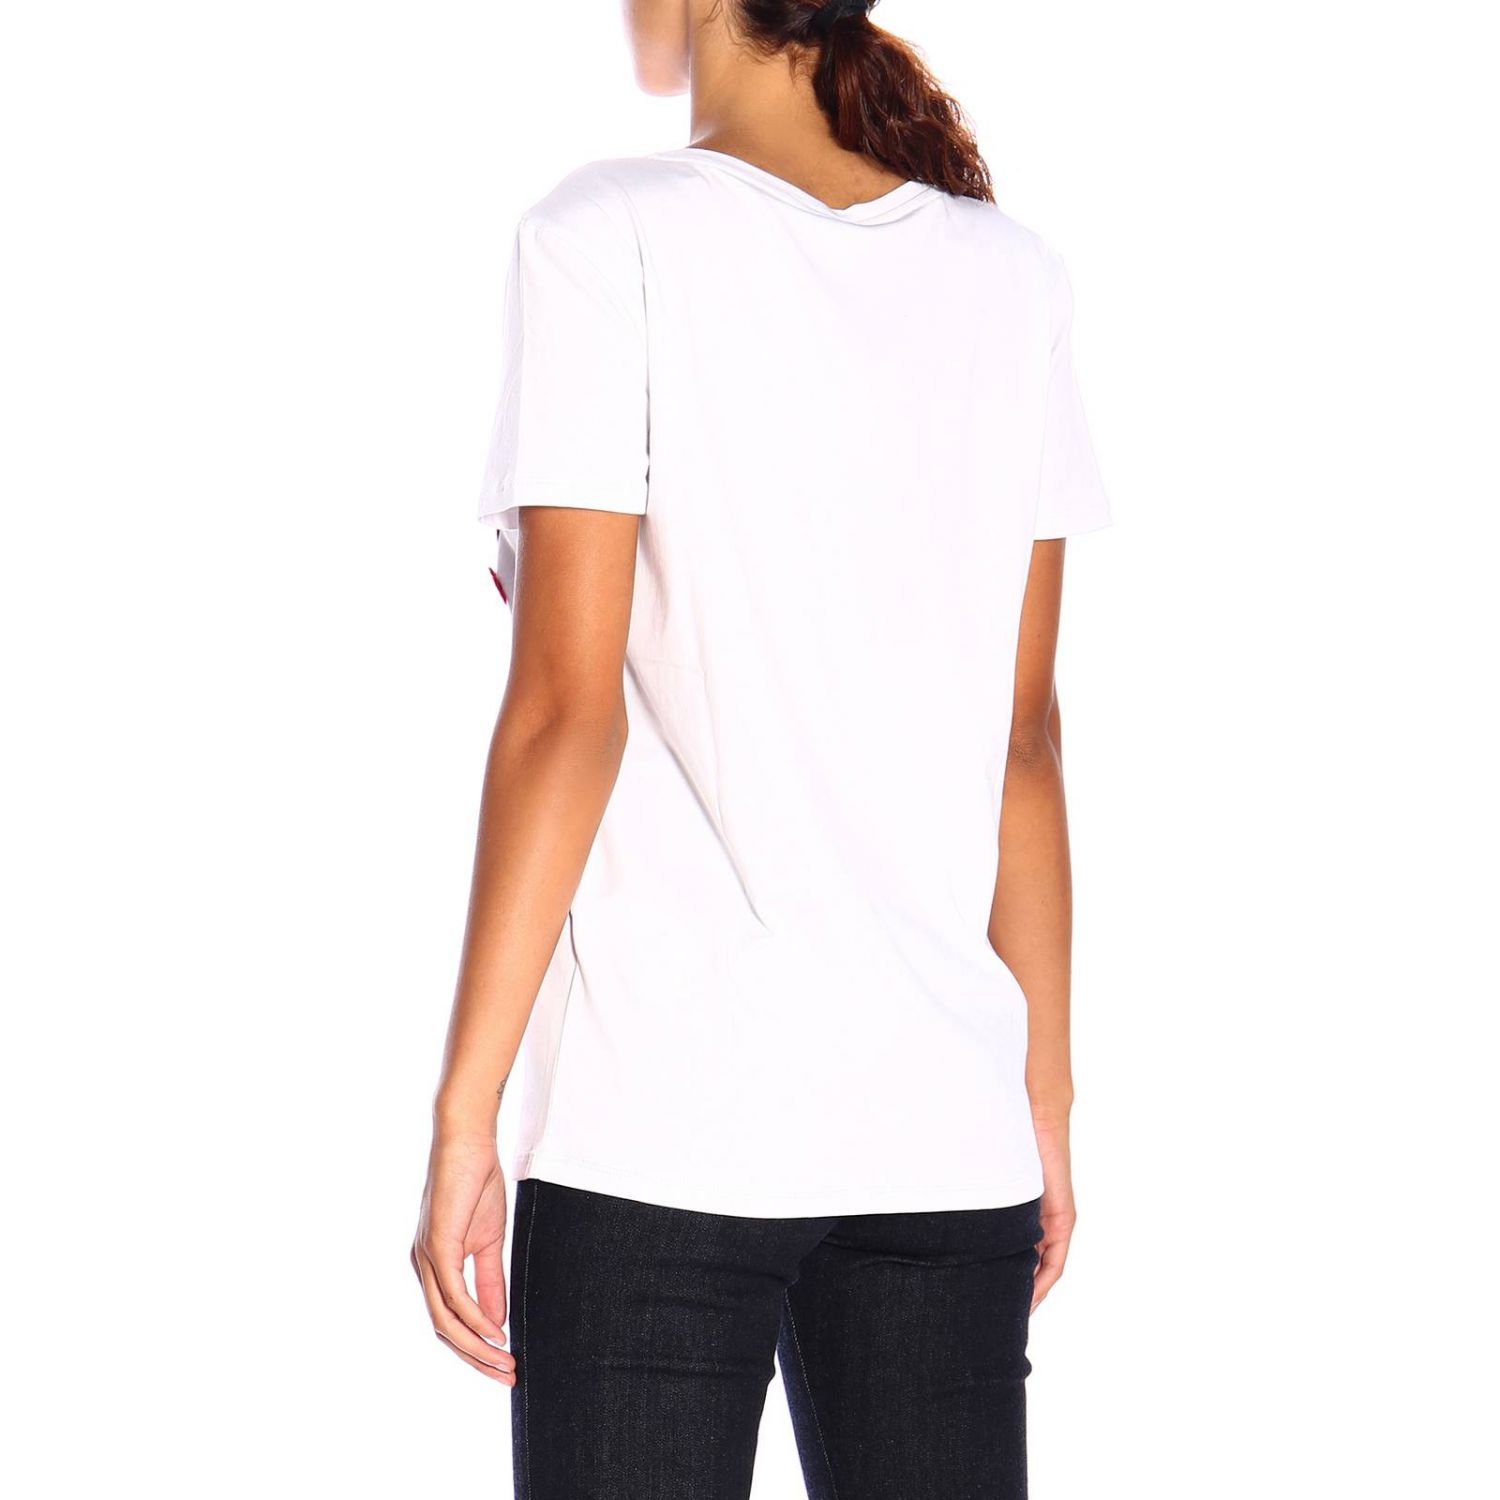 T-shirt women Blumarine white 3